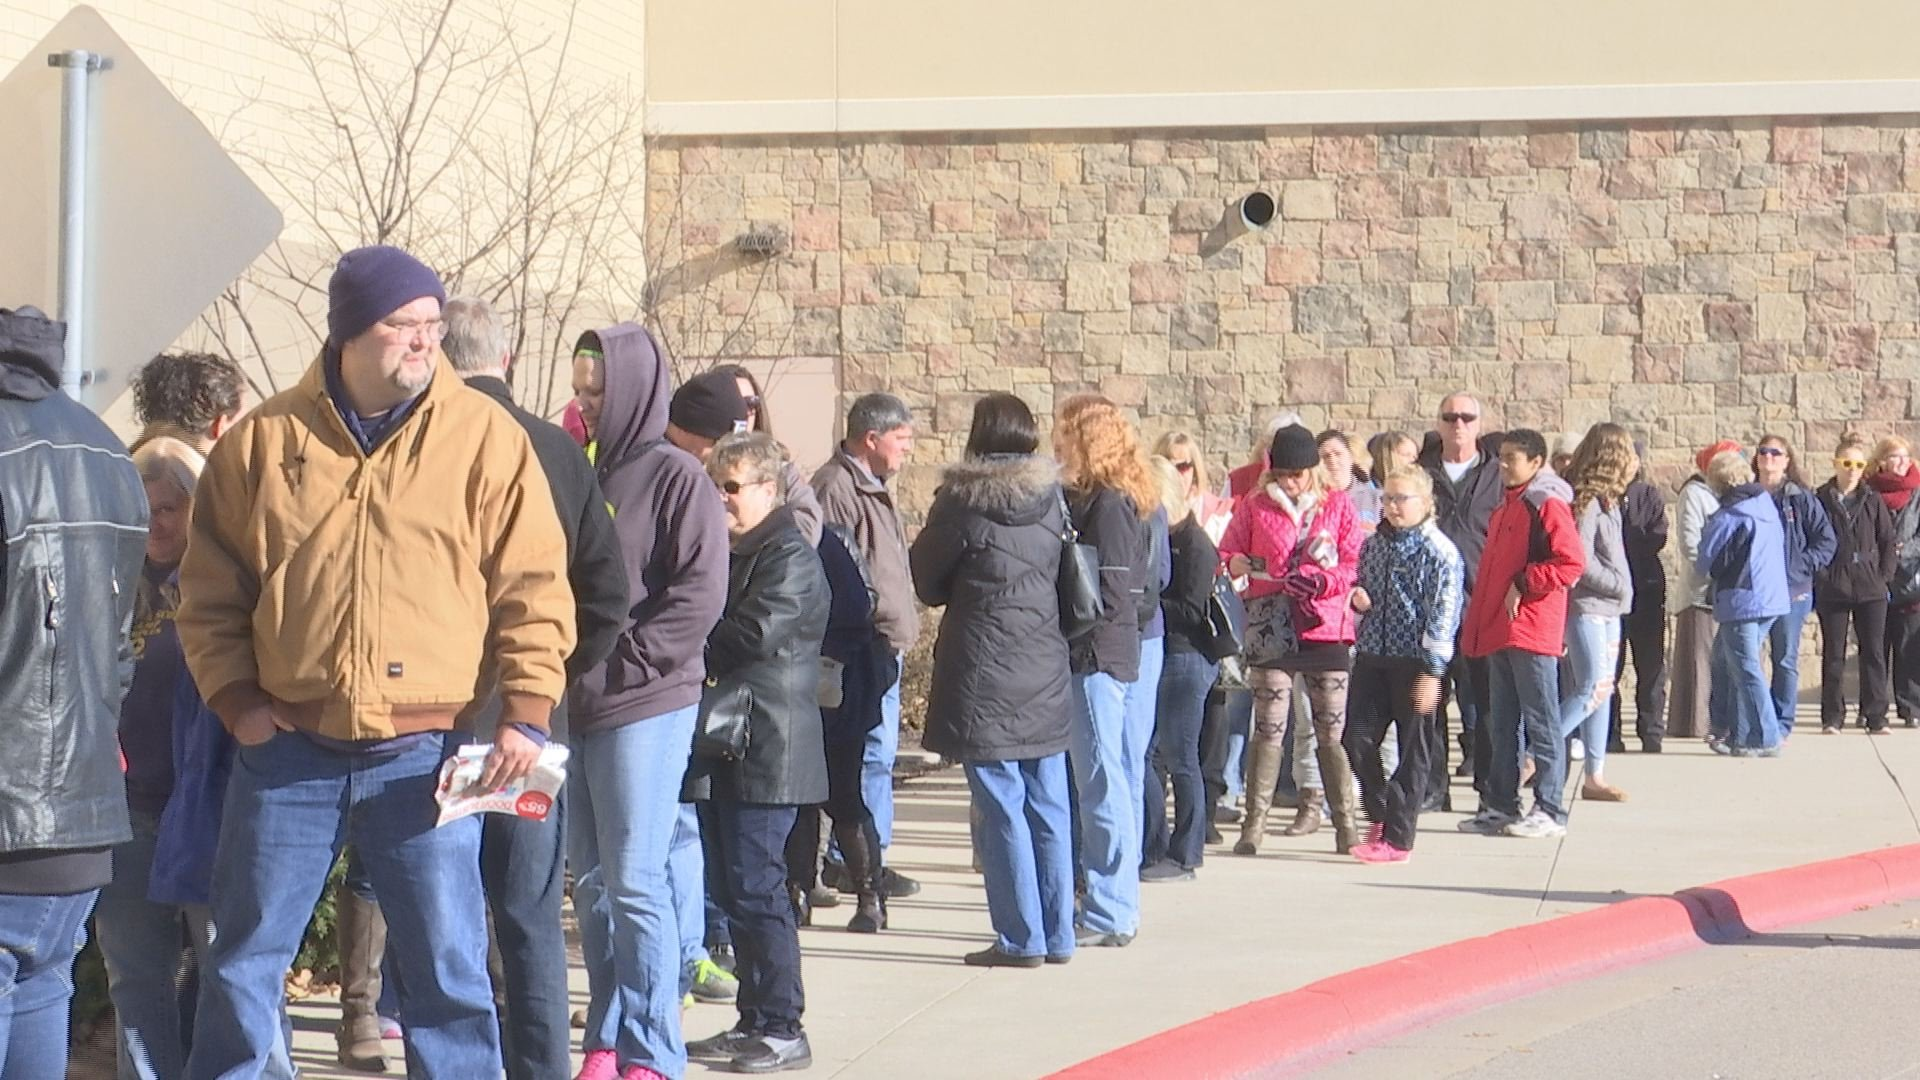 Metro Atlanta shoppers hit the stores on Black Friday